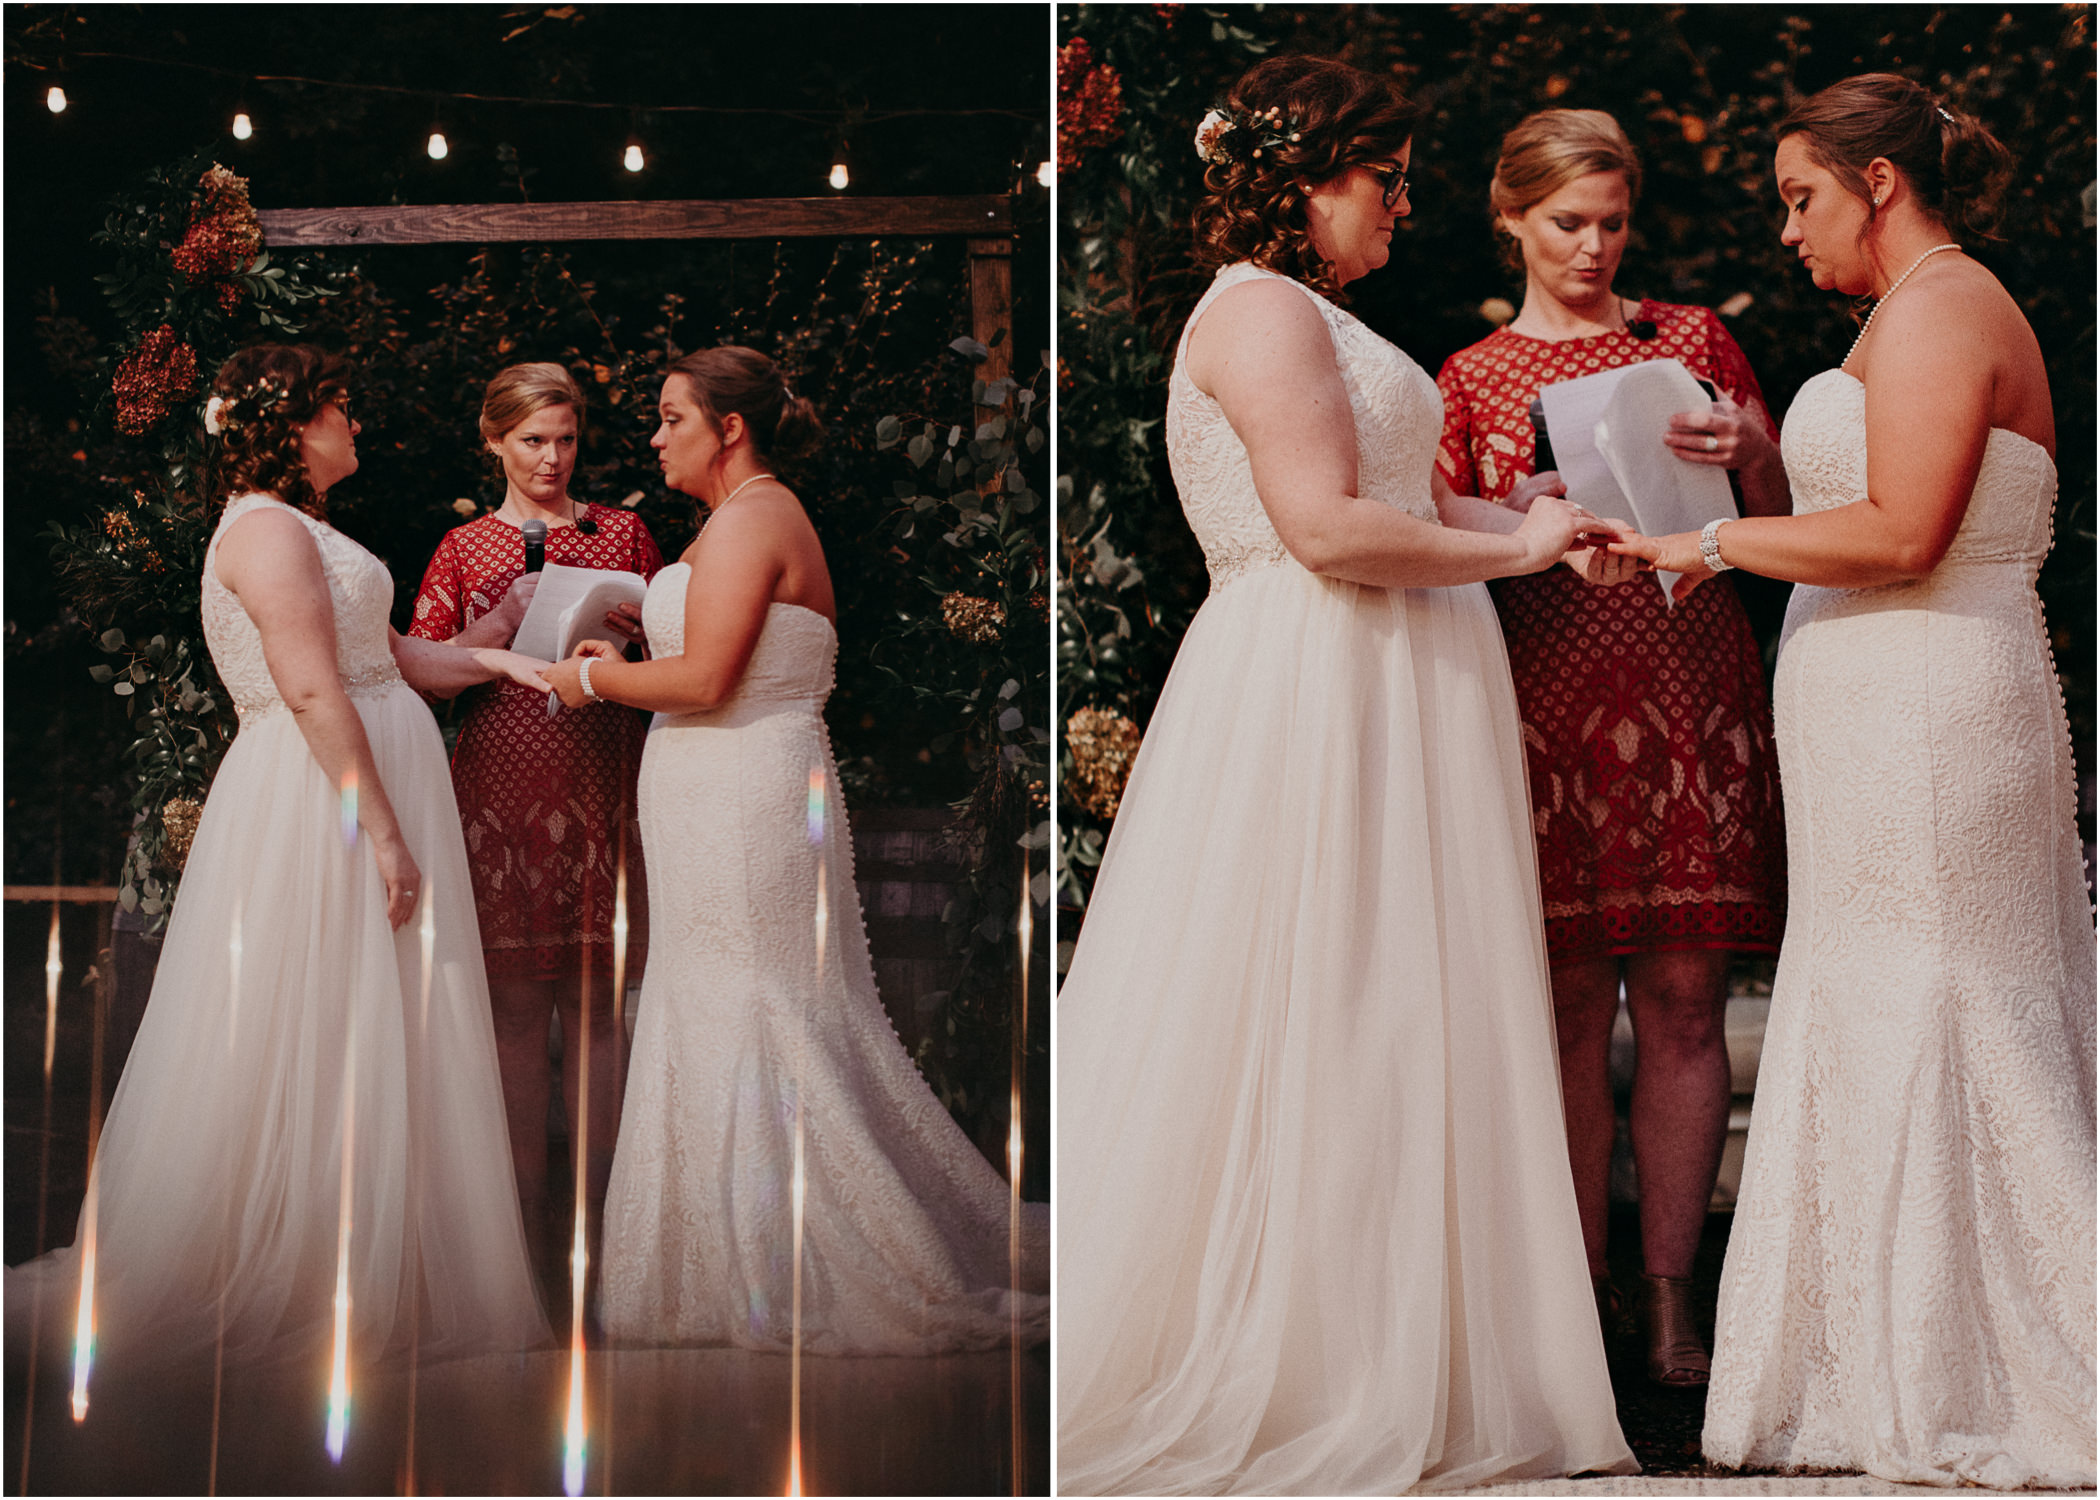 99 - Atlanta wedding photographer - Same sex wedding - wedding dress - details - ceremony - reception - bridal party - two brides. Aline Marin Photography .jpg.JPG